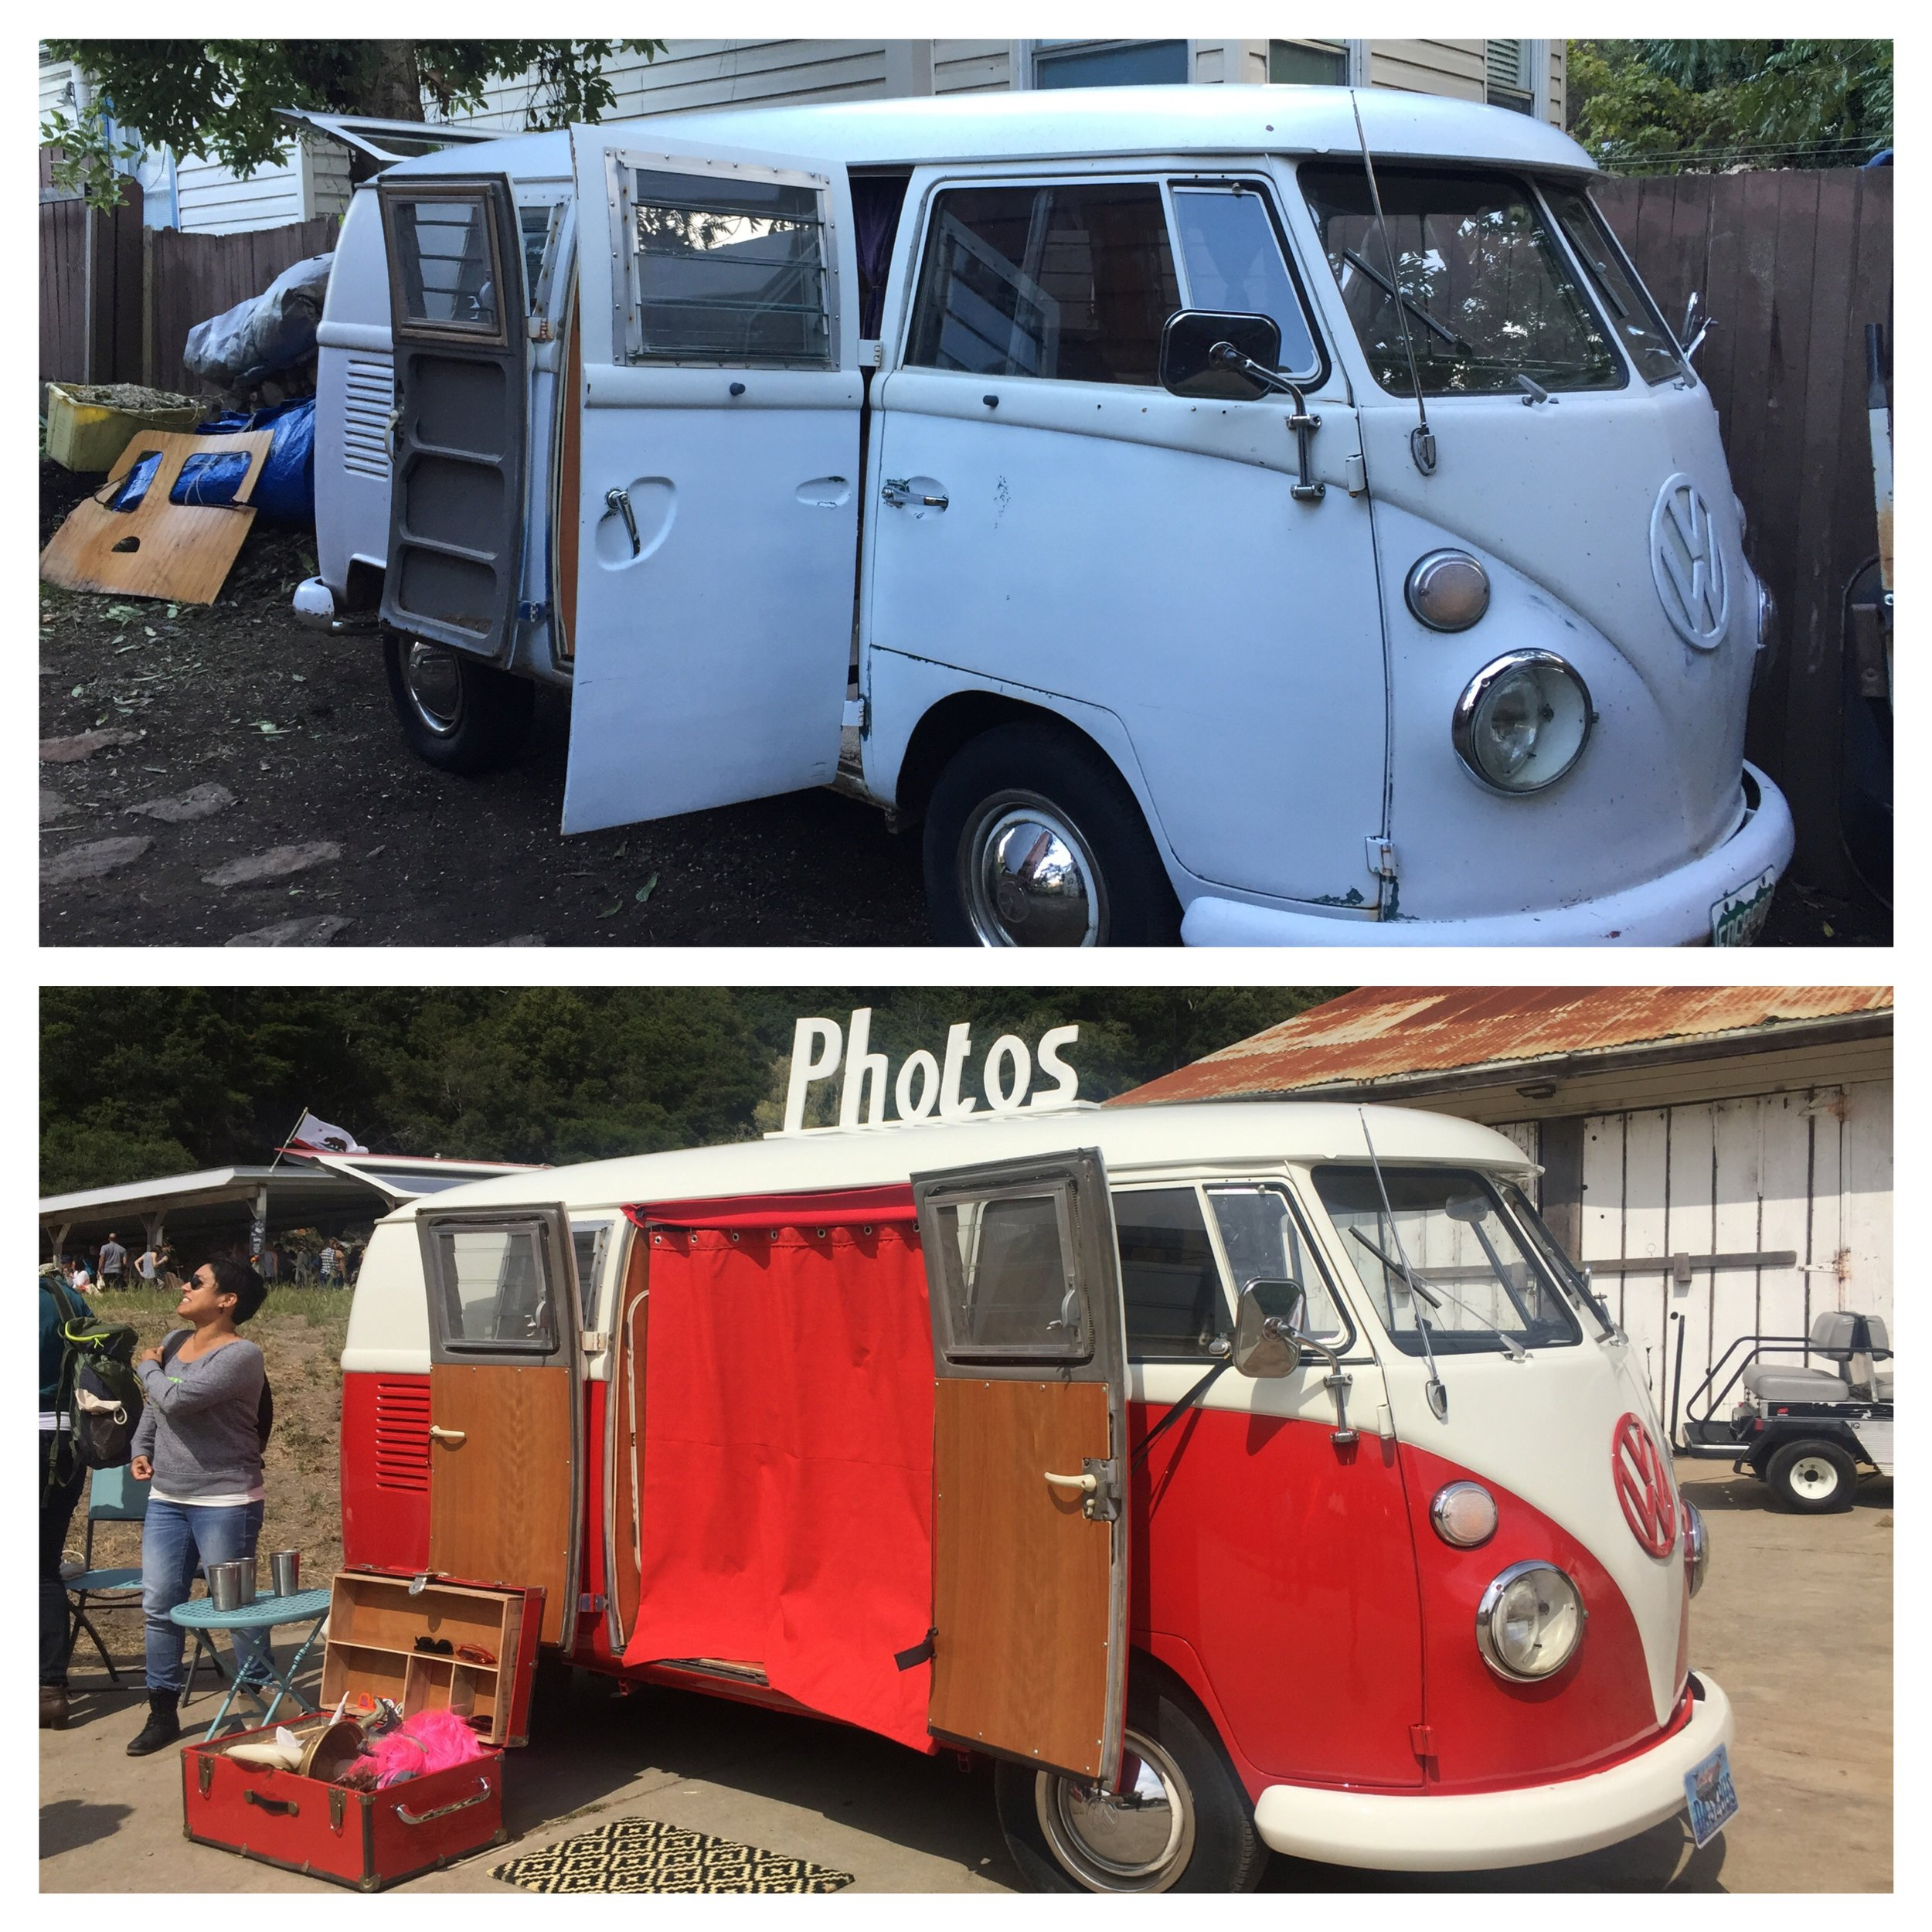 Das Bus 2 (aka Rita) November 2016 to June 2017